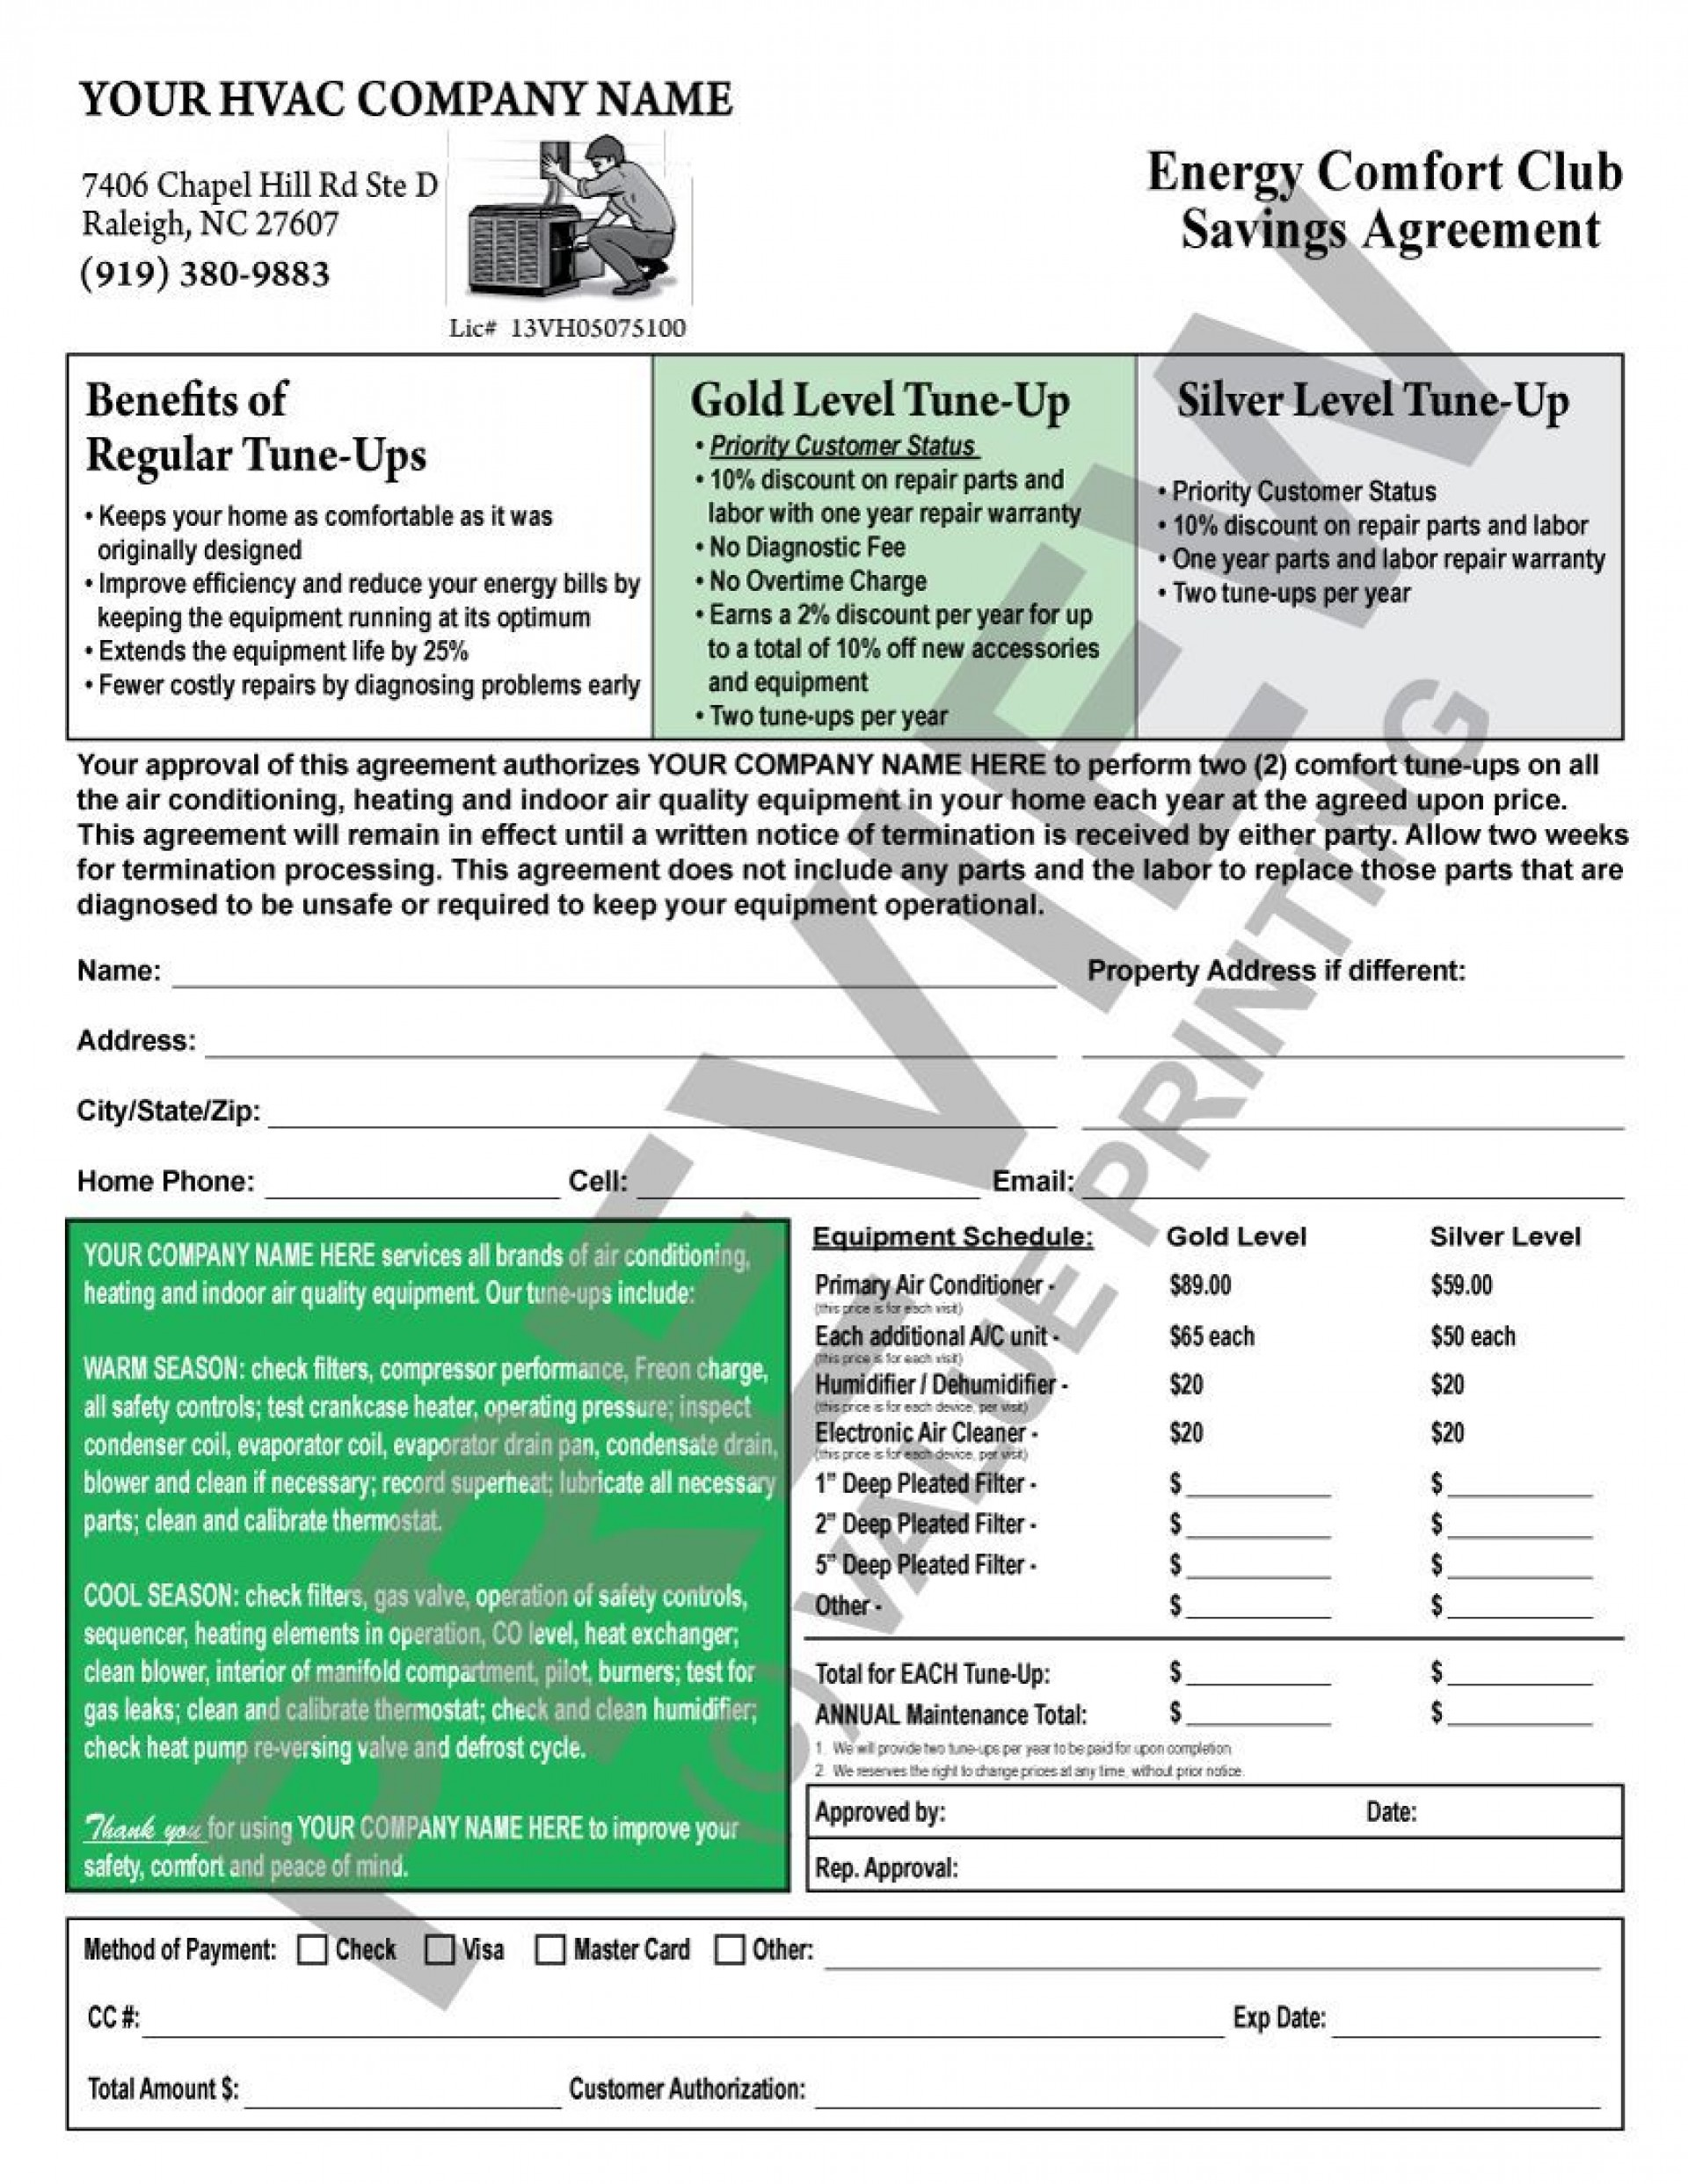 003 Unusual Hvac Service Agreement Template Picture  Contract Form Maintenance Pdf1920